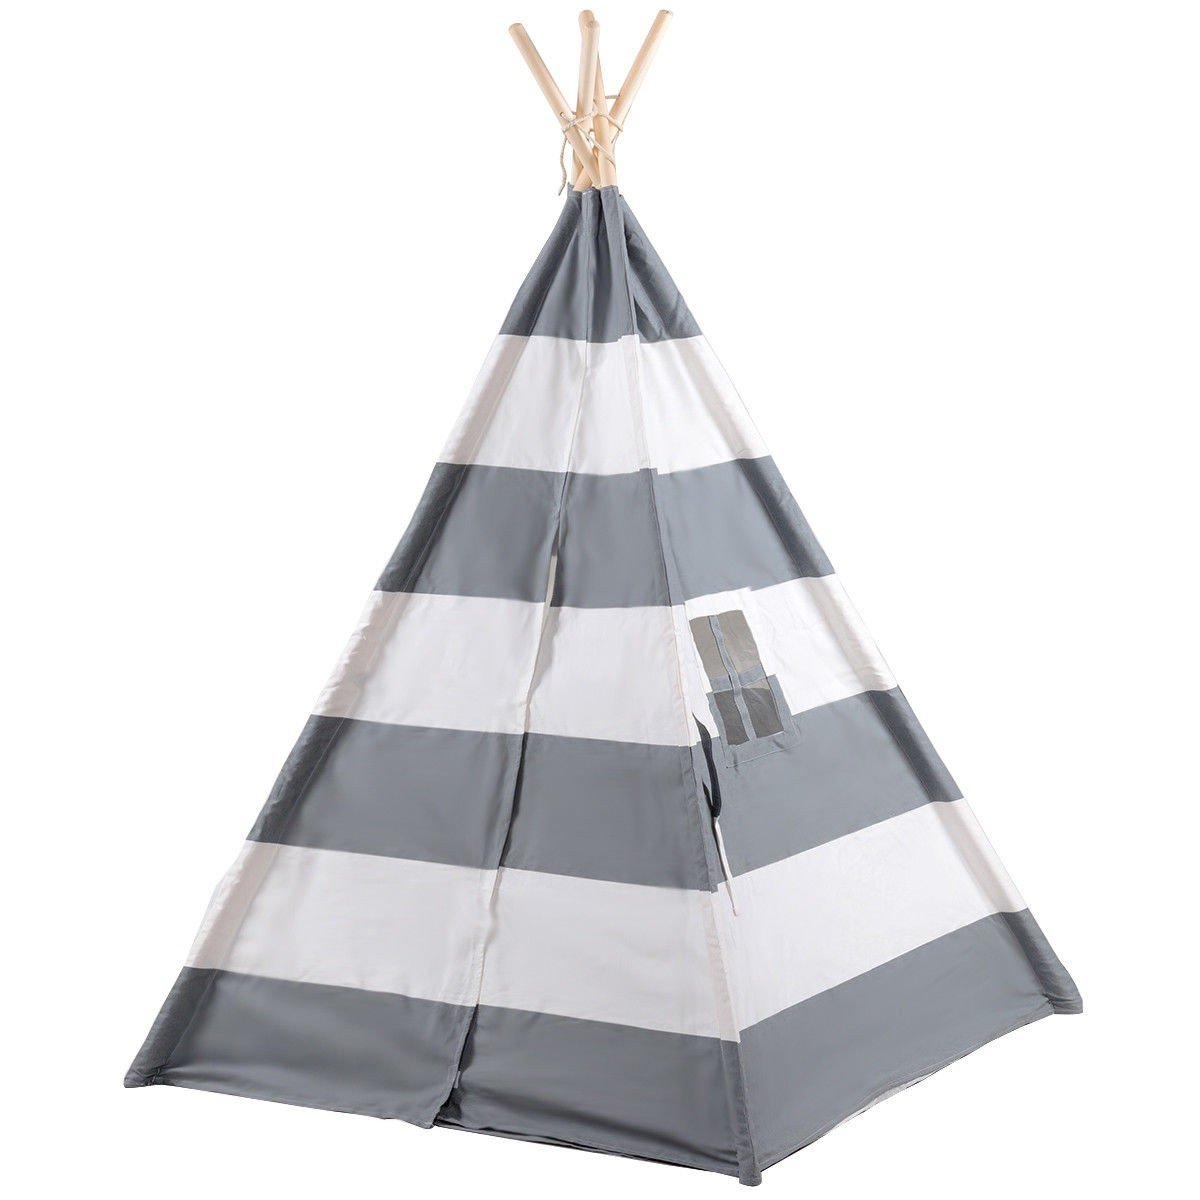 COSTWAY Kids Indian Play Tent Teepee Children Girl Boy Play House Sleeping Dome Bag Gray + FREE E - Book Only By eight24hours by COSTWAY (Image #2)